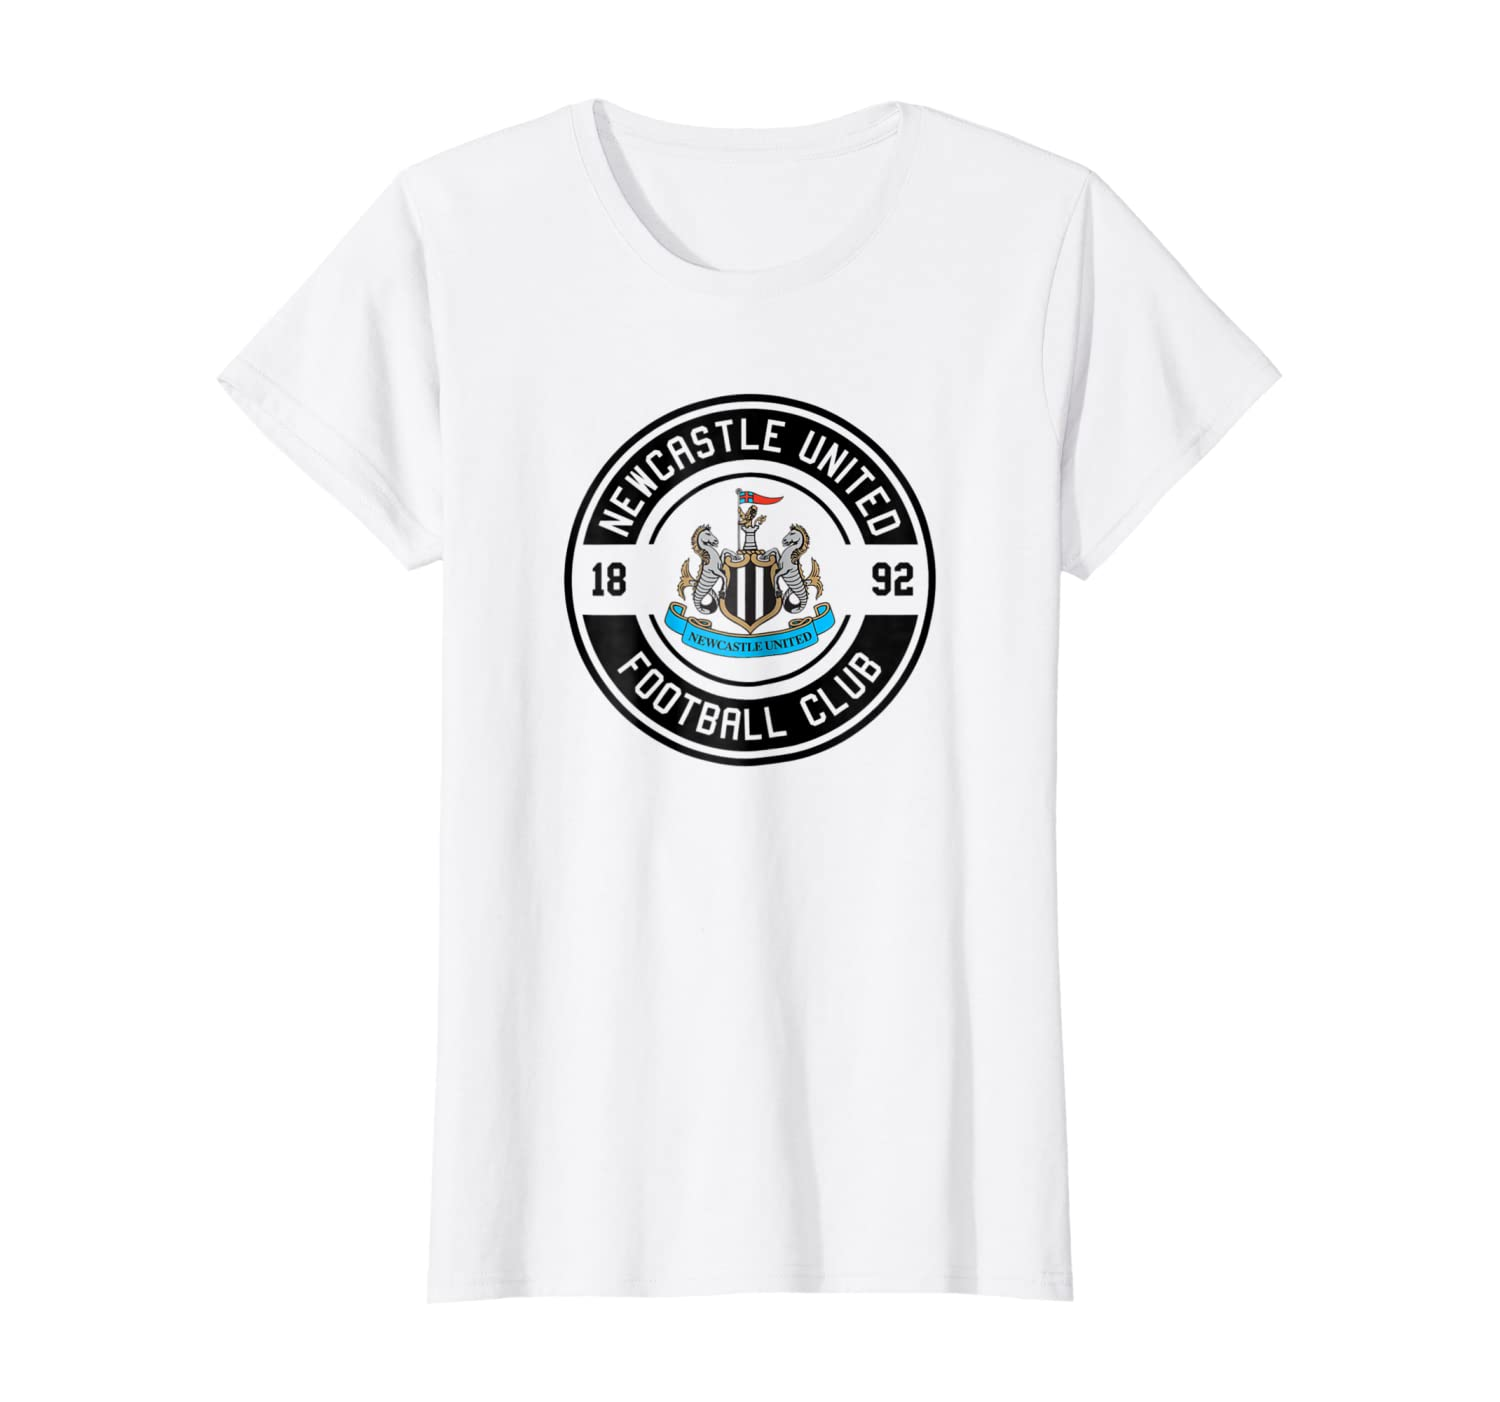 Newcastle United Color Crest Patch T-shirt White